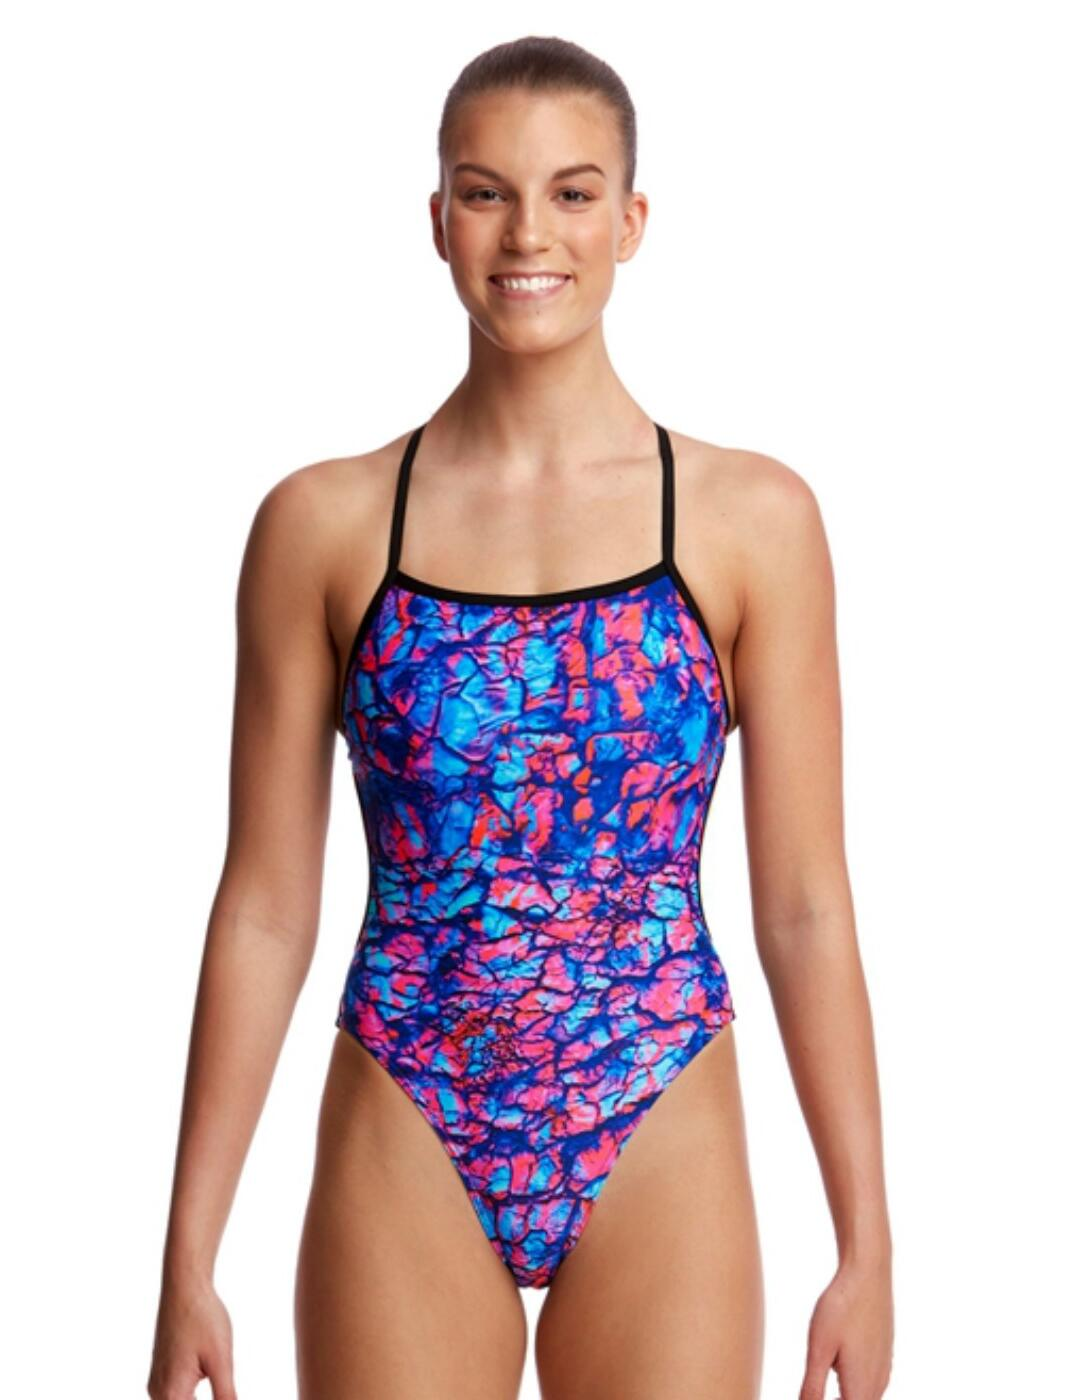 FKS010L02203 Funkita Ladies Rusted Twisted One Piece Swimsuit - FKS010L02203 Rusted